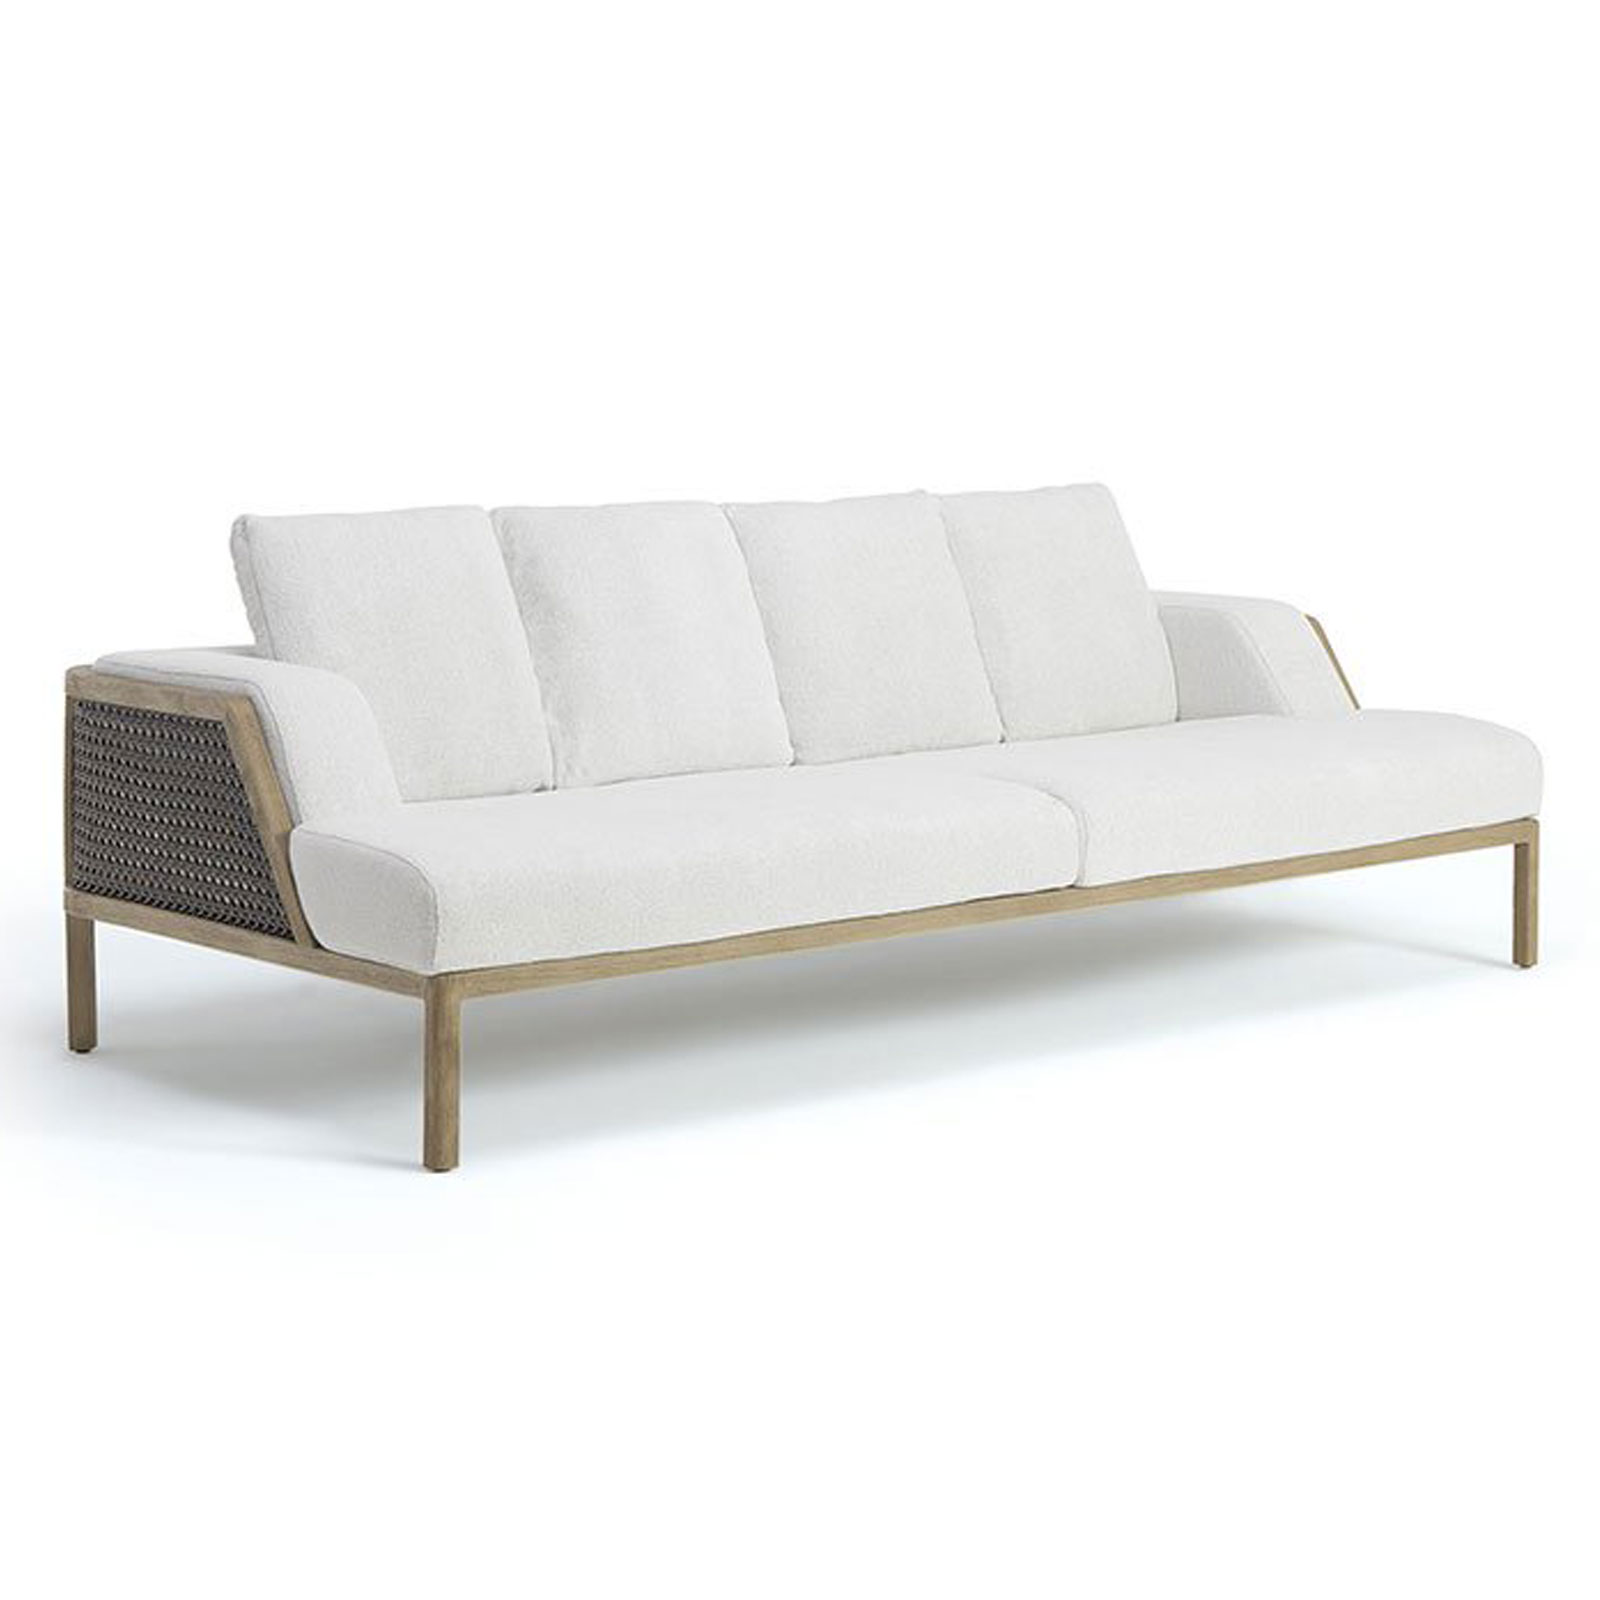 Xl Sofa Grand Life Xl Sofa By Ethimo | Core Furniture Online